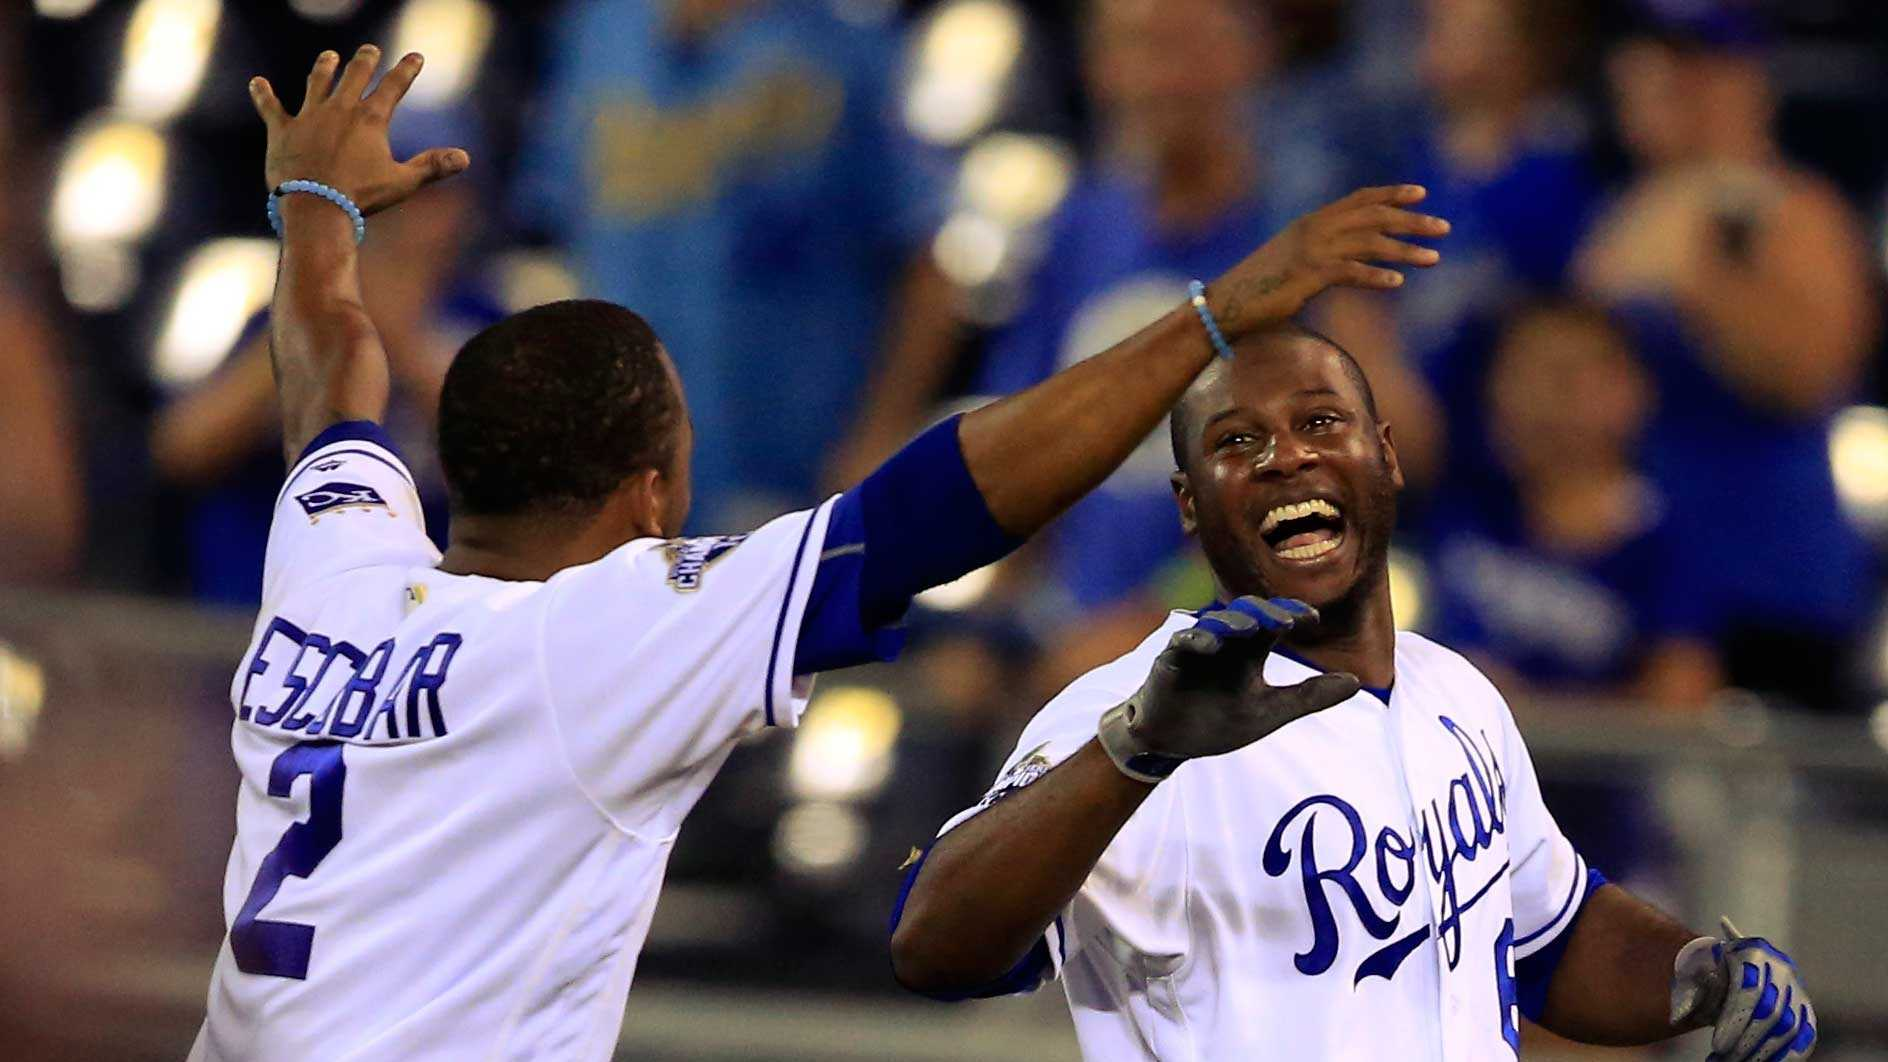 Kansas City Royals' Lorenzo Cain, right, celebrates with Alcides Escobar after driving in the winning run in a baseball game against the Chicago White Sox at Kauffman Stadium in Kansas City, Mo., Wednesday, Aug. 10, 2016. The Royals defeated the White Sox 3-2 in 14 innings. (AP Photo/Orlin Wagner)